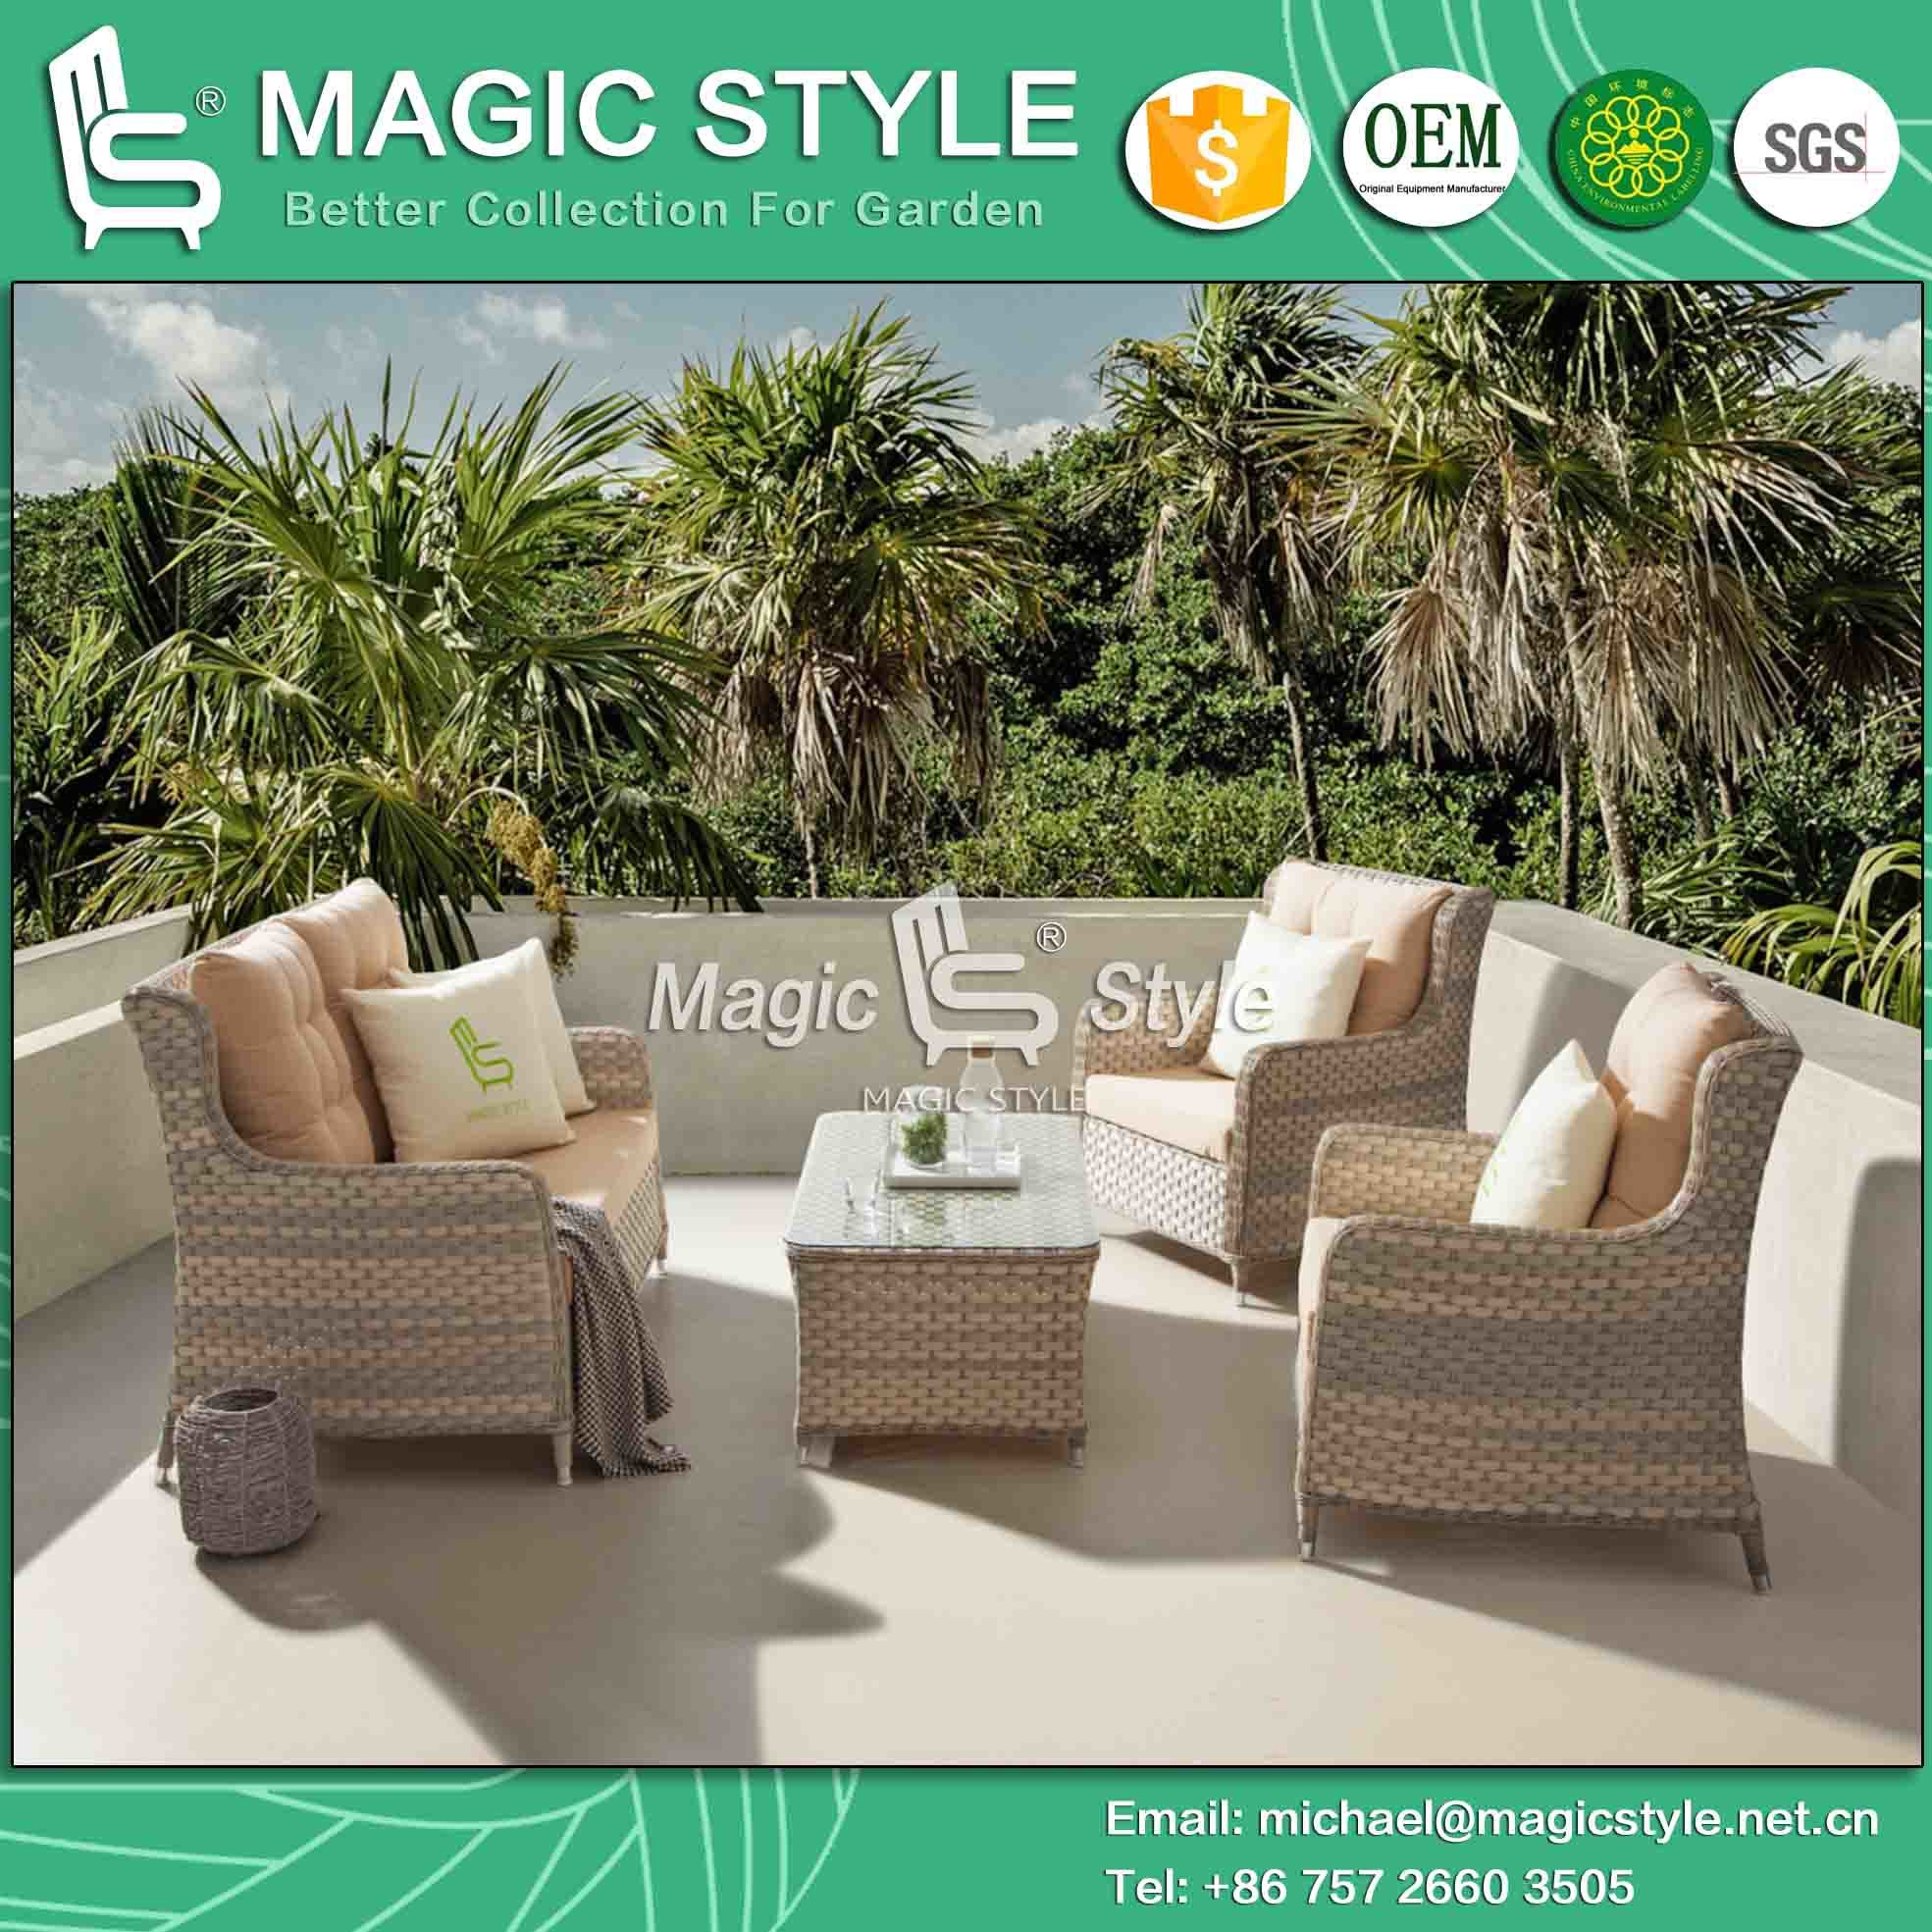 Table Lounge Garden Furniture Couch Rattan Png Download 1500 Hot Item Patio Sofa With Cushion Wicker Combination Sofa Set Outdoor Sofa Set Rattan 2 Seat Sofa Leisure Sofa For Hotel Patio Furniture